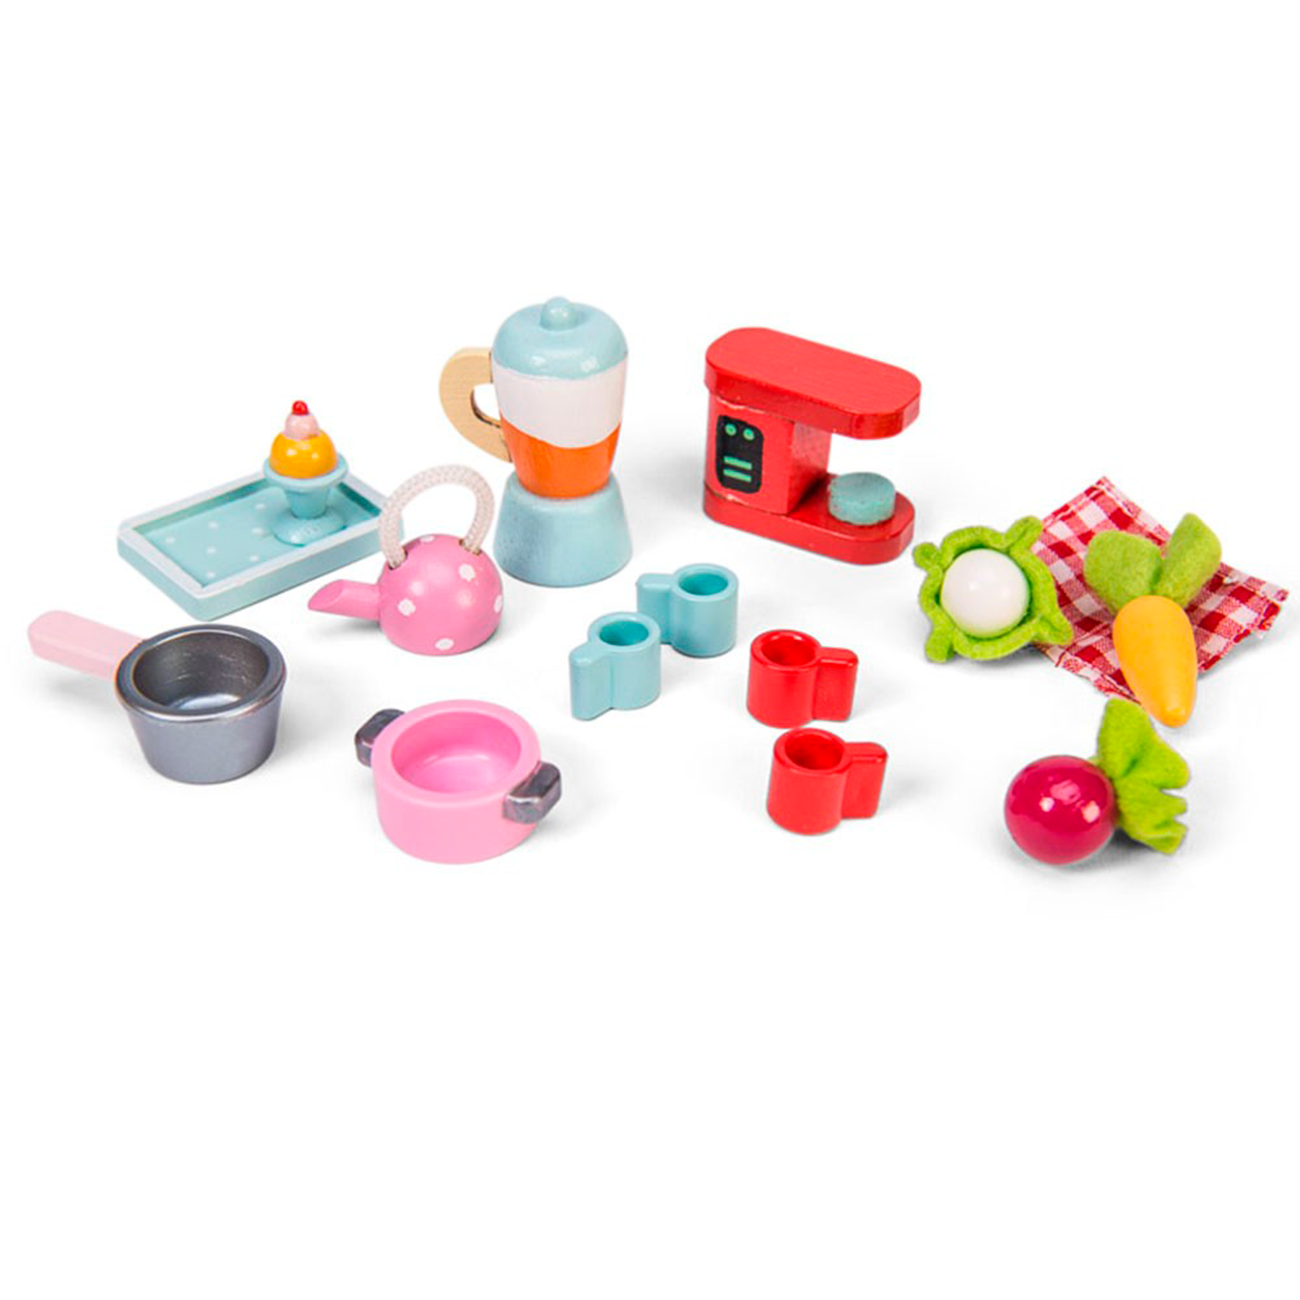 Le Toy Van Daisylane Tea Kitchen Set